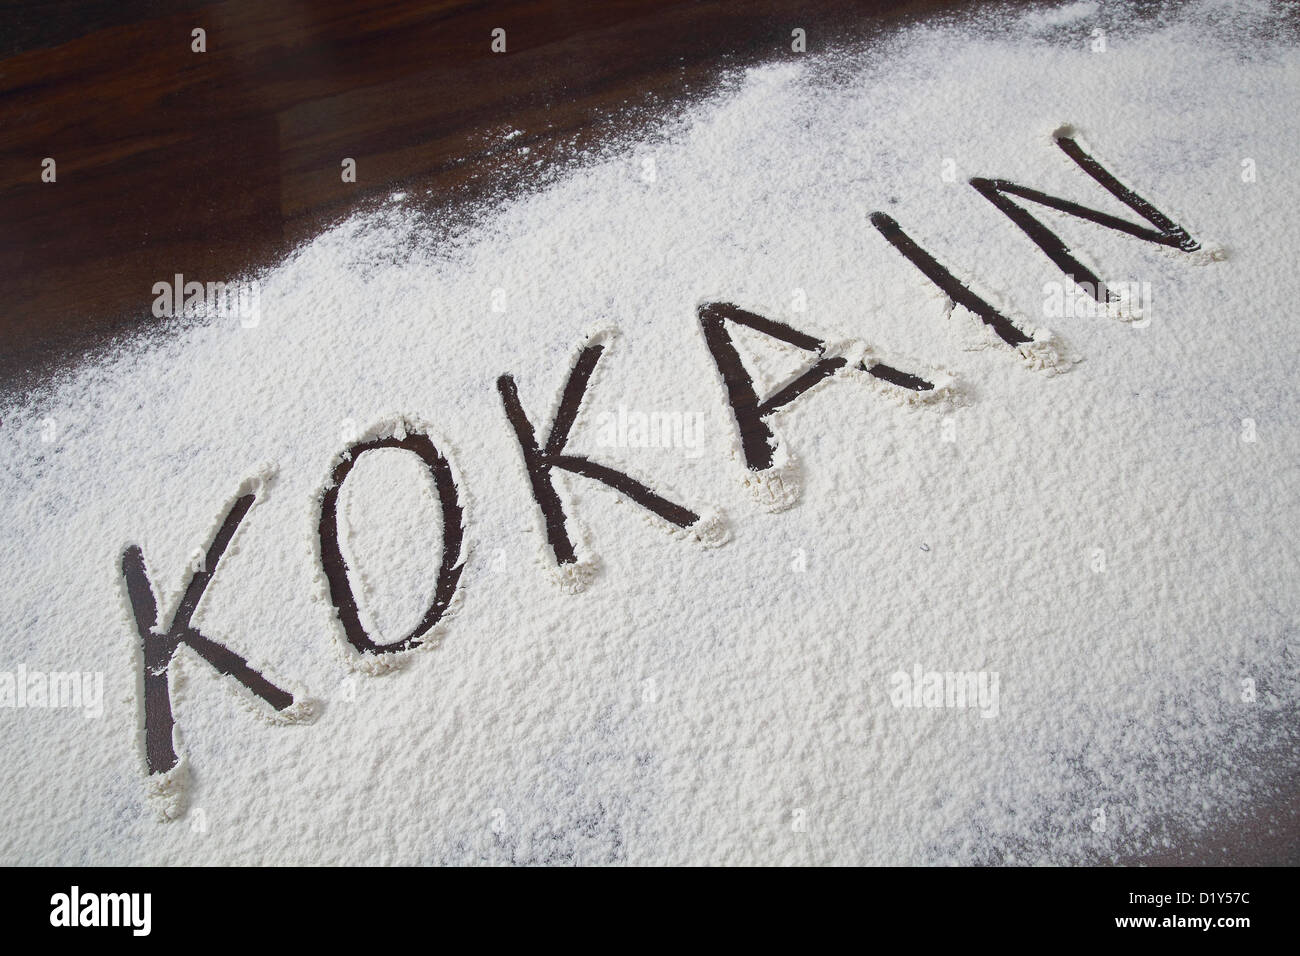 The word Cocaine written in a white powder - Stock Image